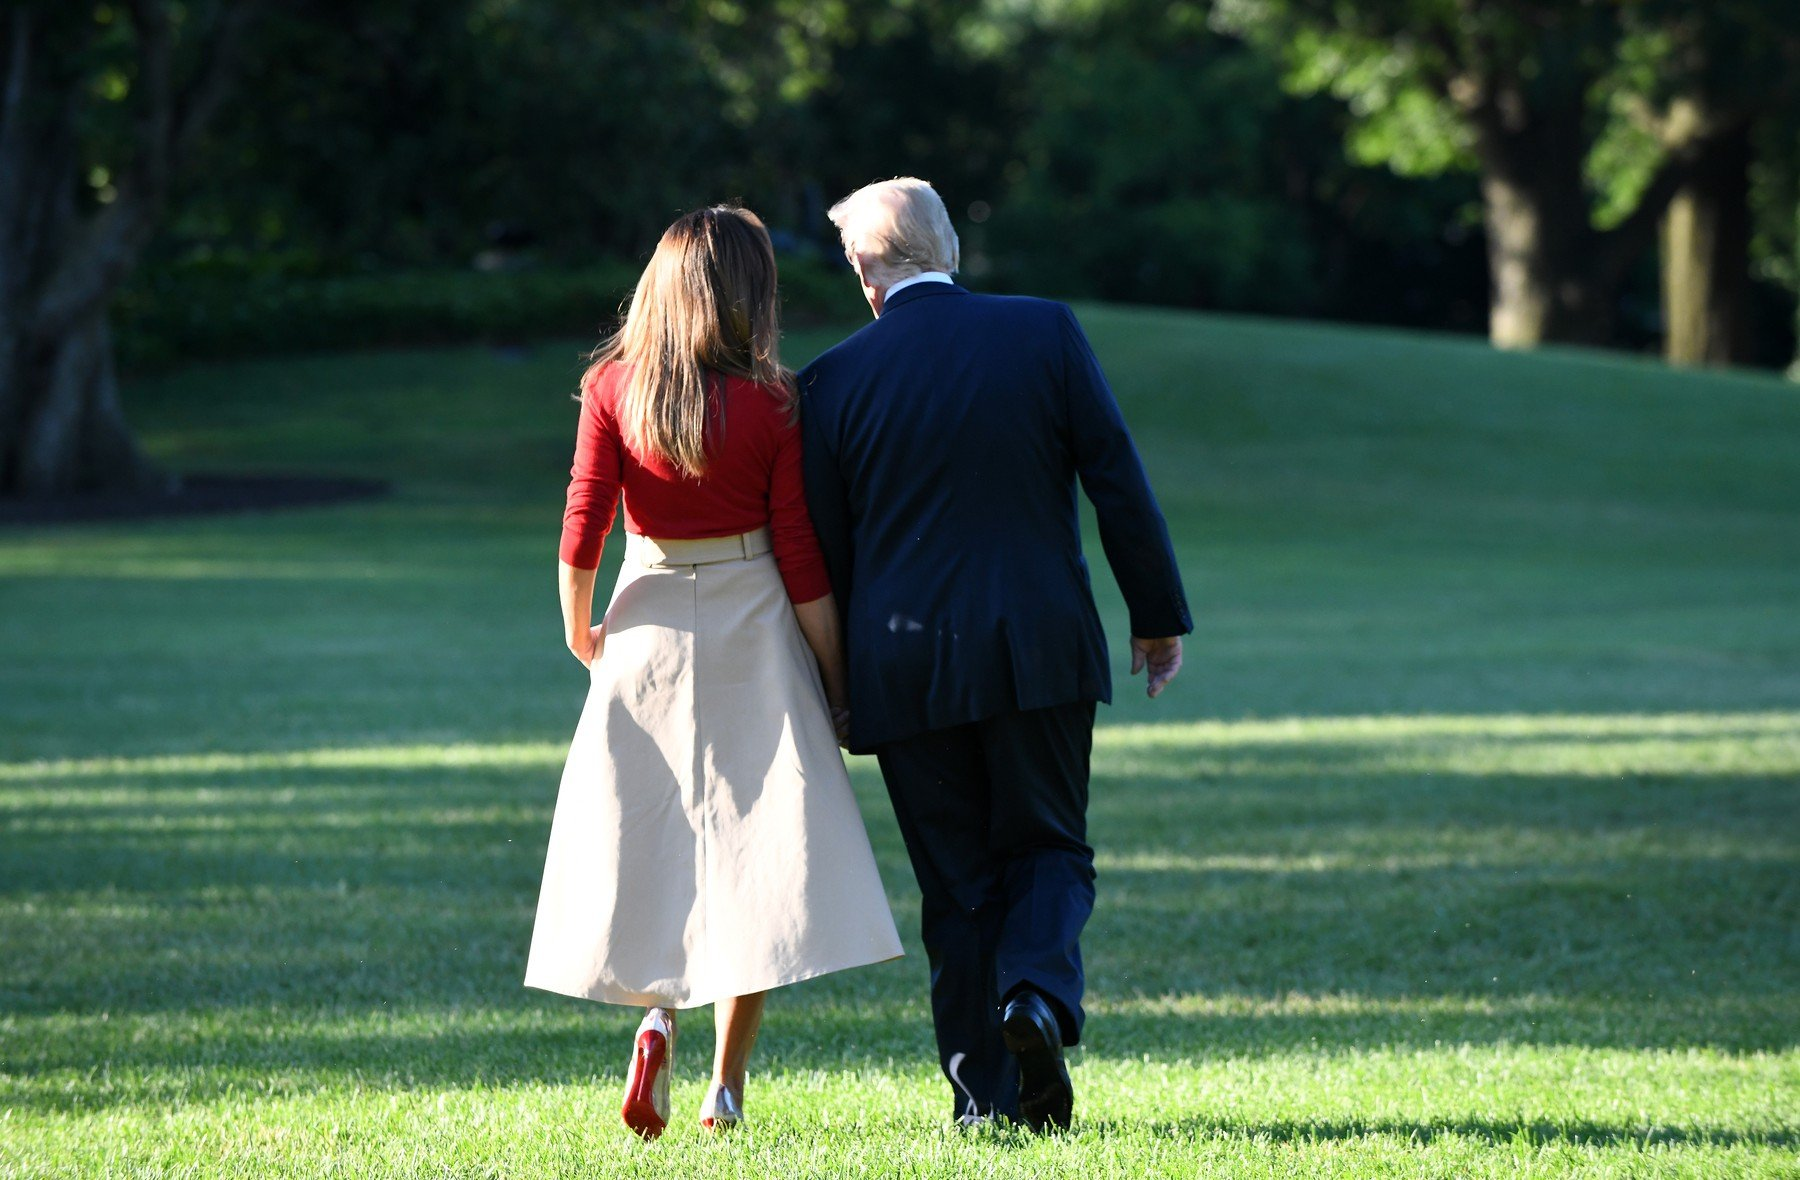 U.S. President Donald Trump and First Lady Melania Trump depart the White House en route to Brussels, Belgium, July 10, 2018 in Washington, DC., Image: 377430100, License: Rights-managed, Restrictions: , Model Release: no, Credit line: Profimedia, Abaca